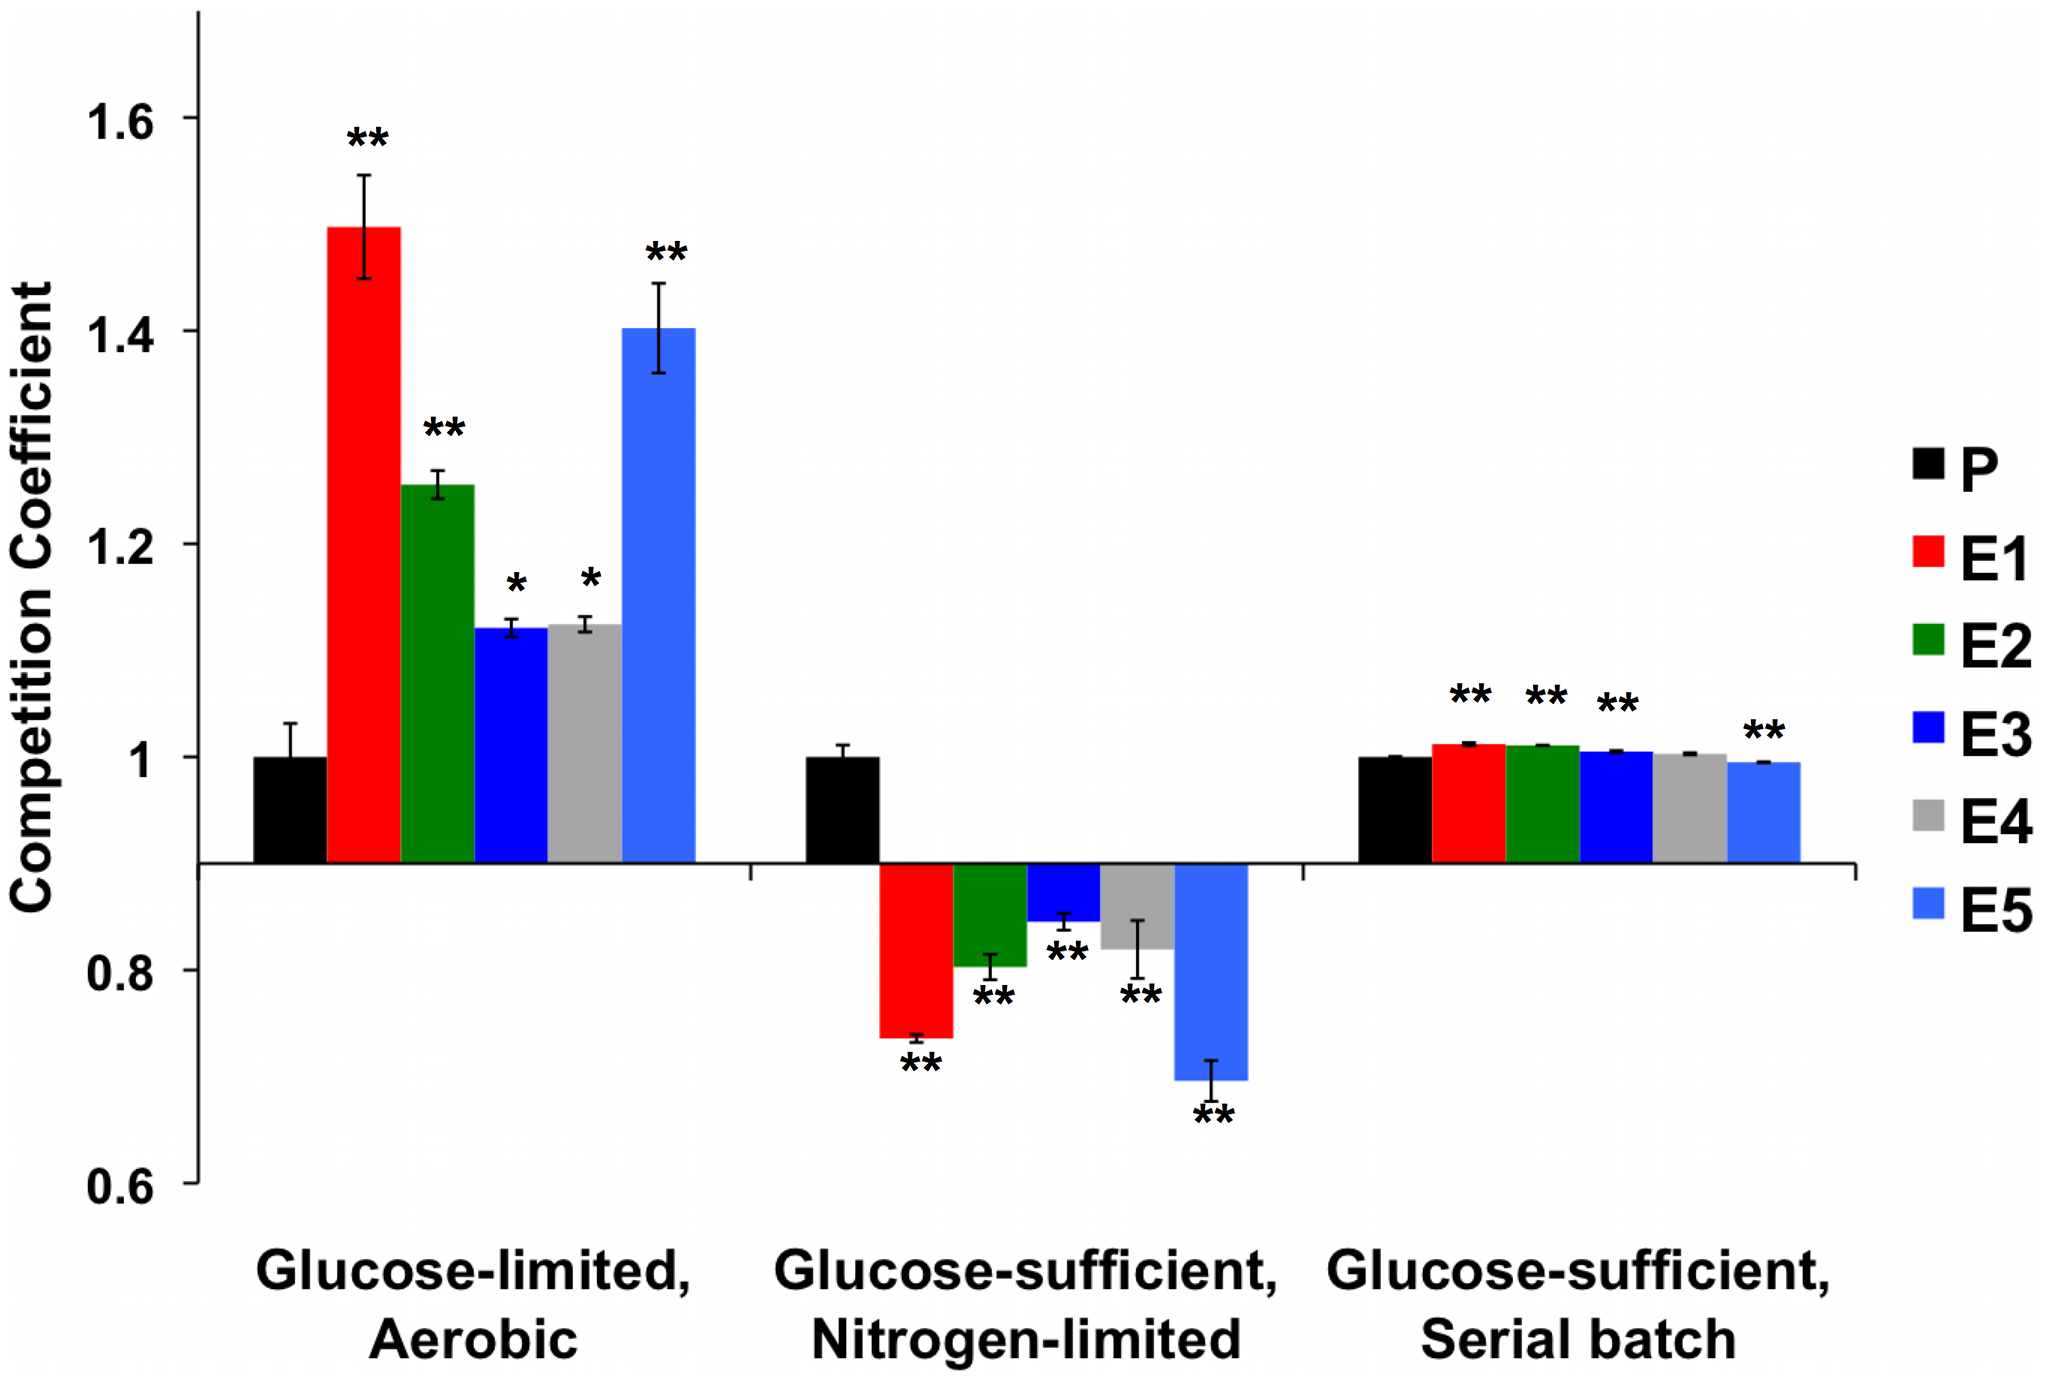 Normalized Competition Coefficients for 2 Glucose-Rich Environments.